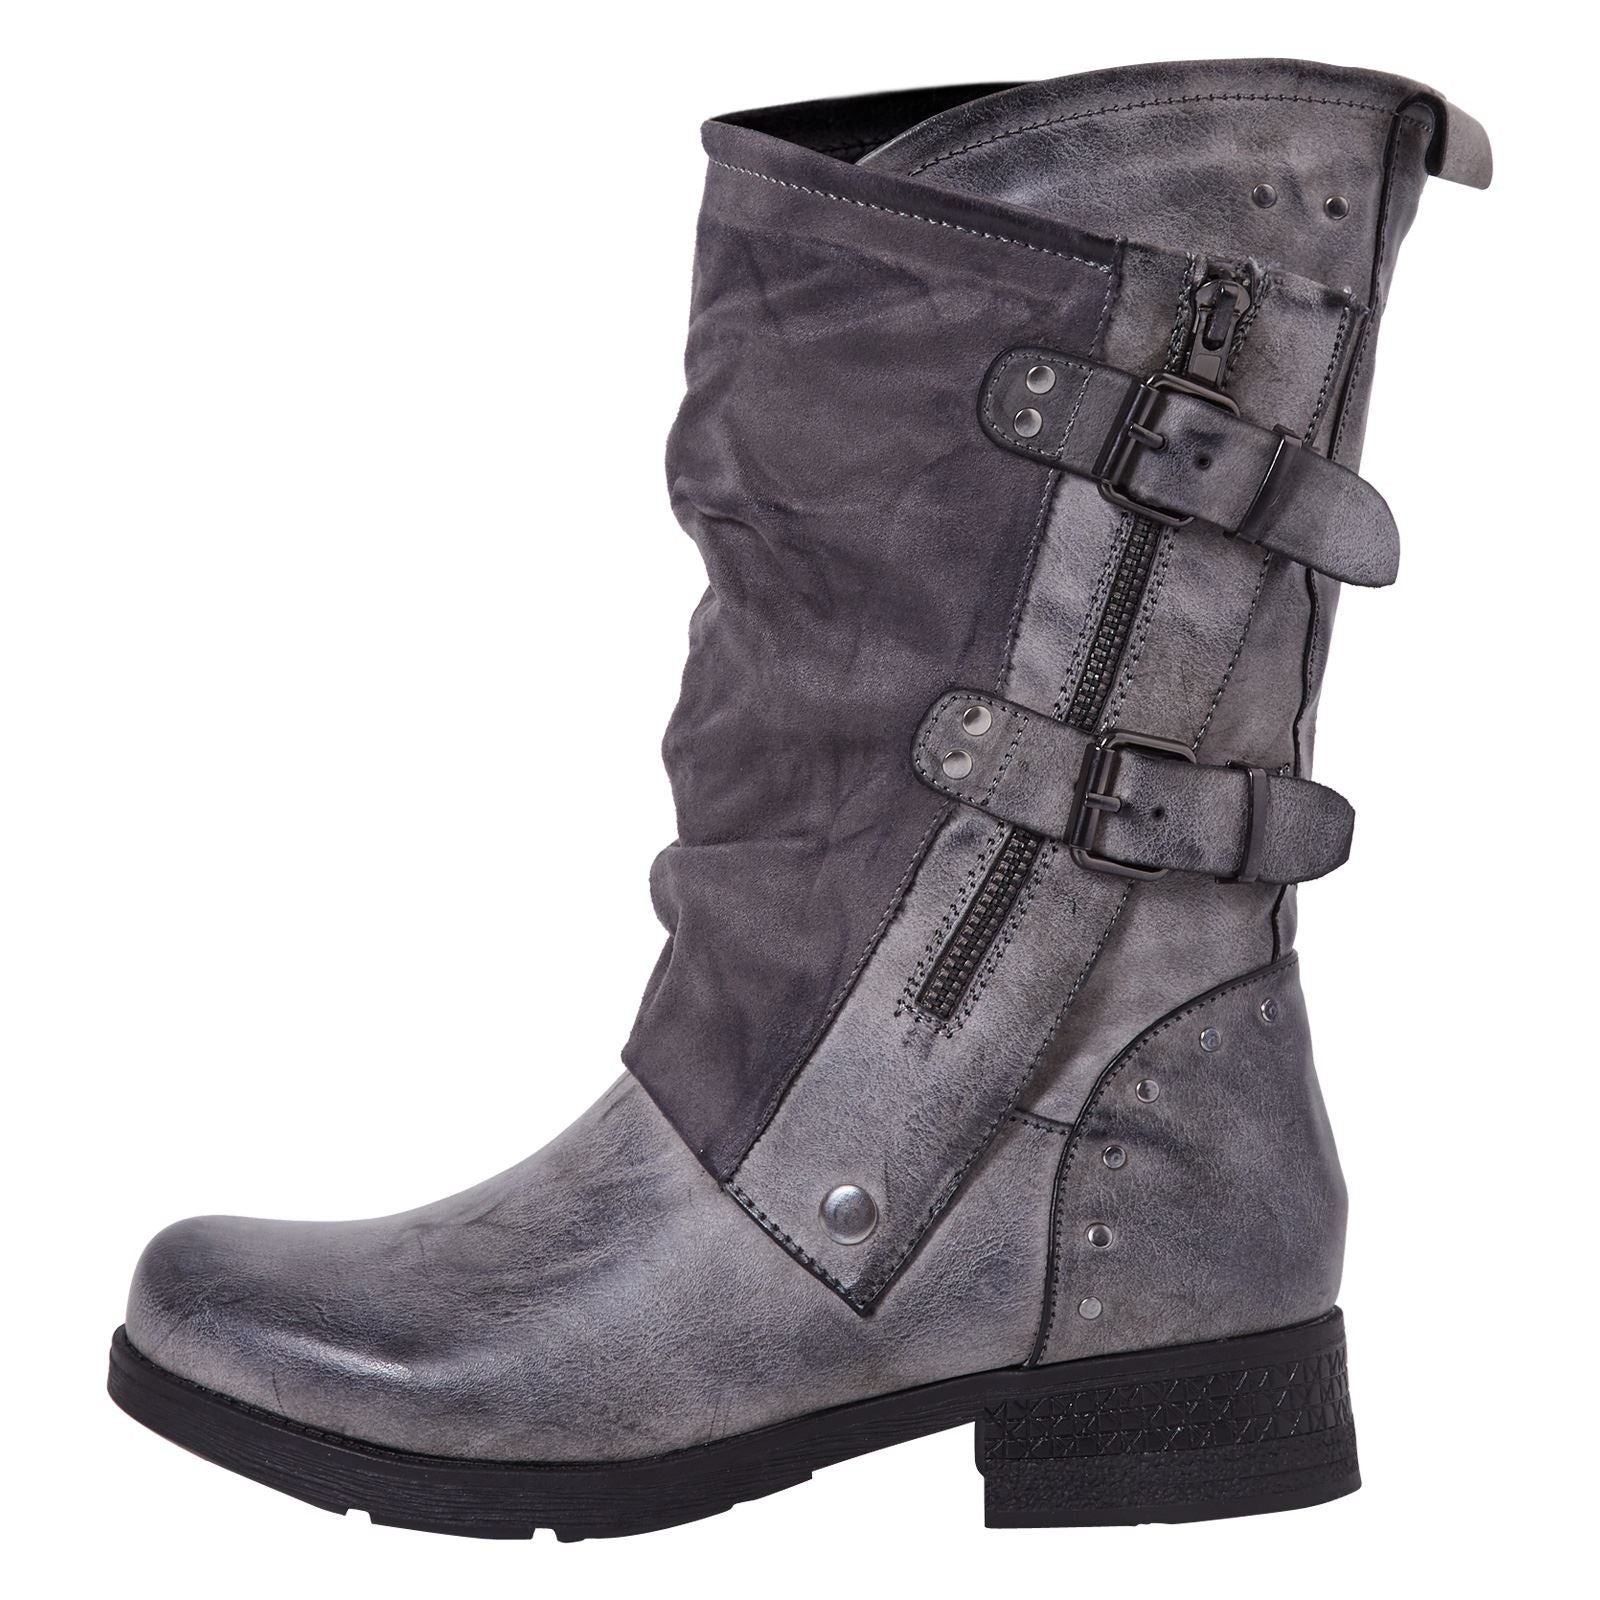 Aadhya Two Toned Mid Calf Boots in Grey - Feet First Fashion